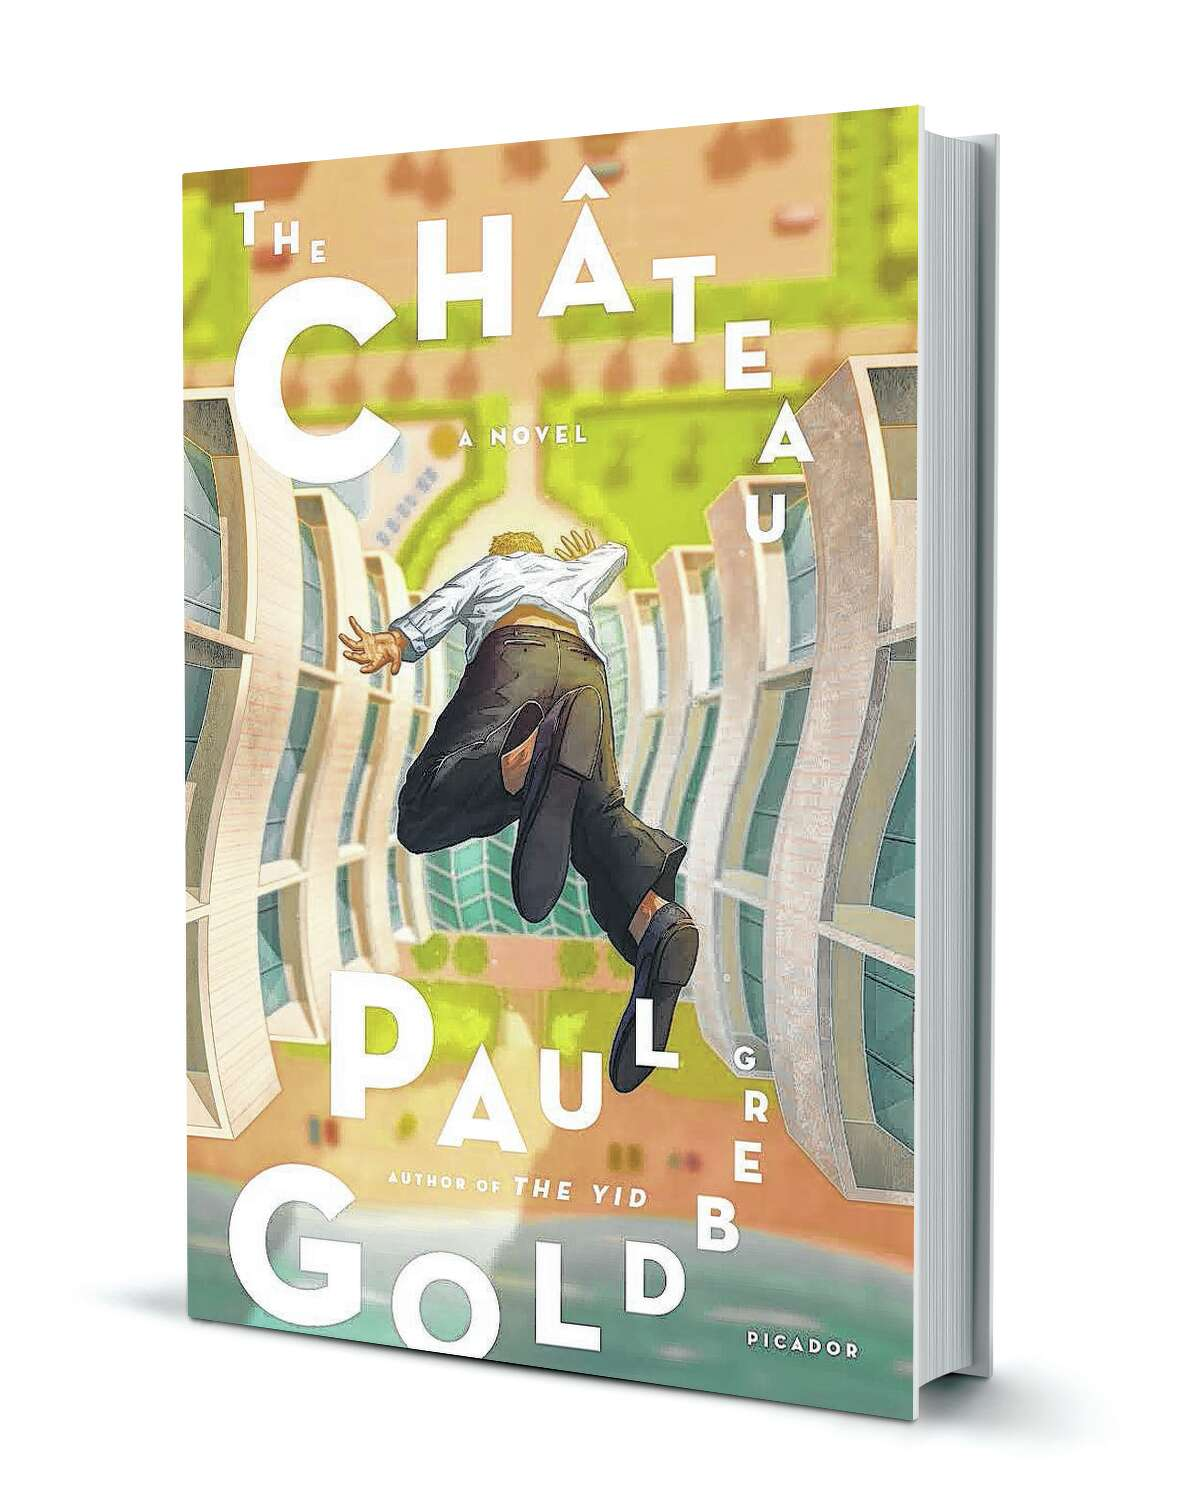 Author Paul Goldberg shows comedy is just tragedy plus time.